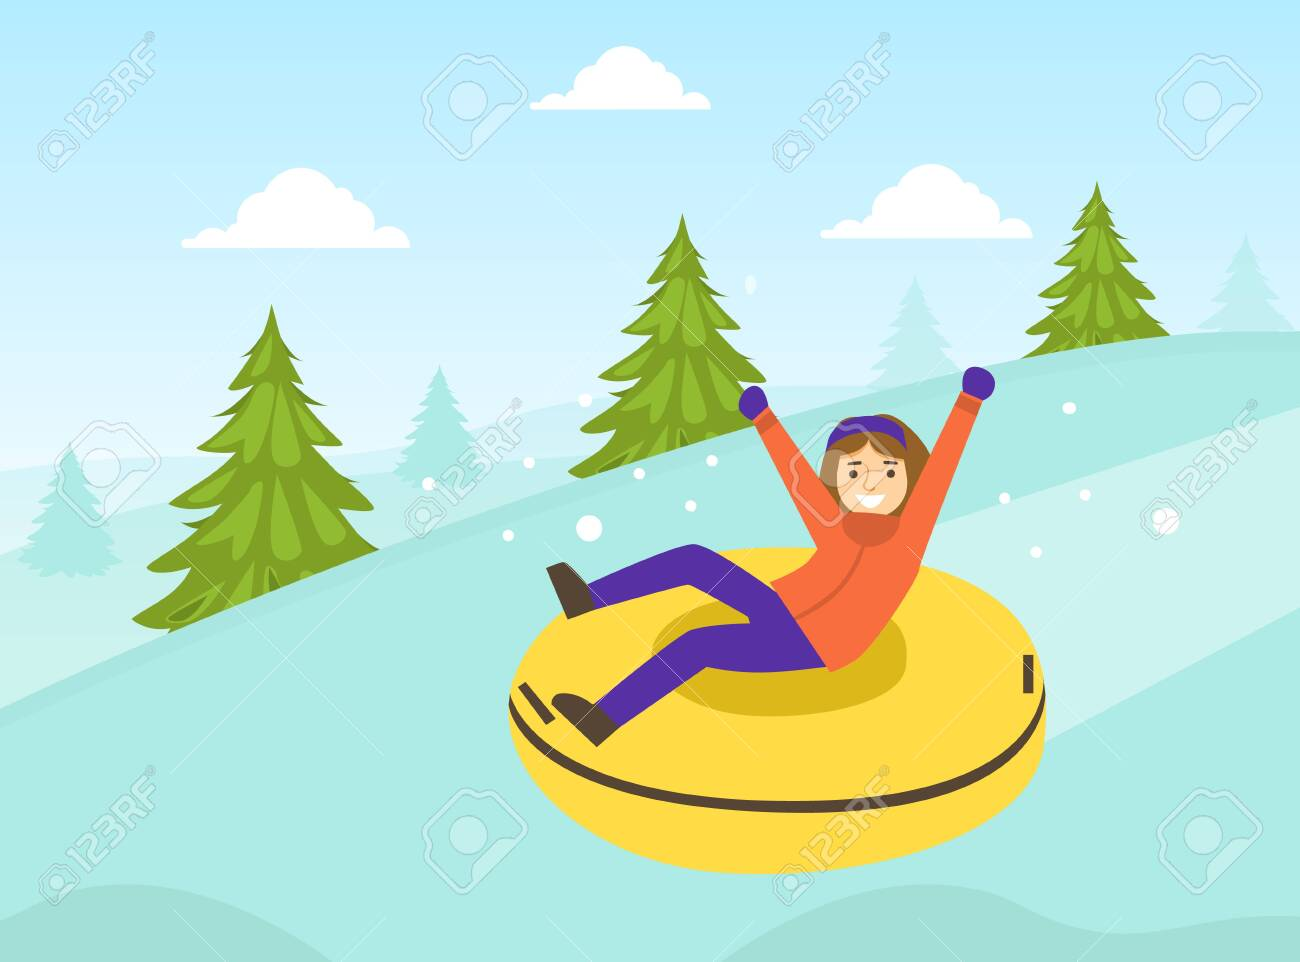 Boy Dressed in Winter Clothing Riding Snow Tube, Winter Sports and Activities Concept Vector Illustration - 156884590